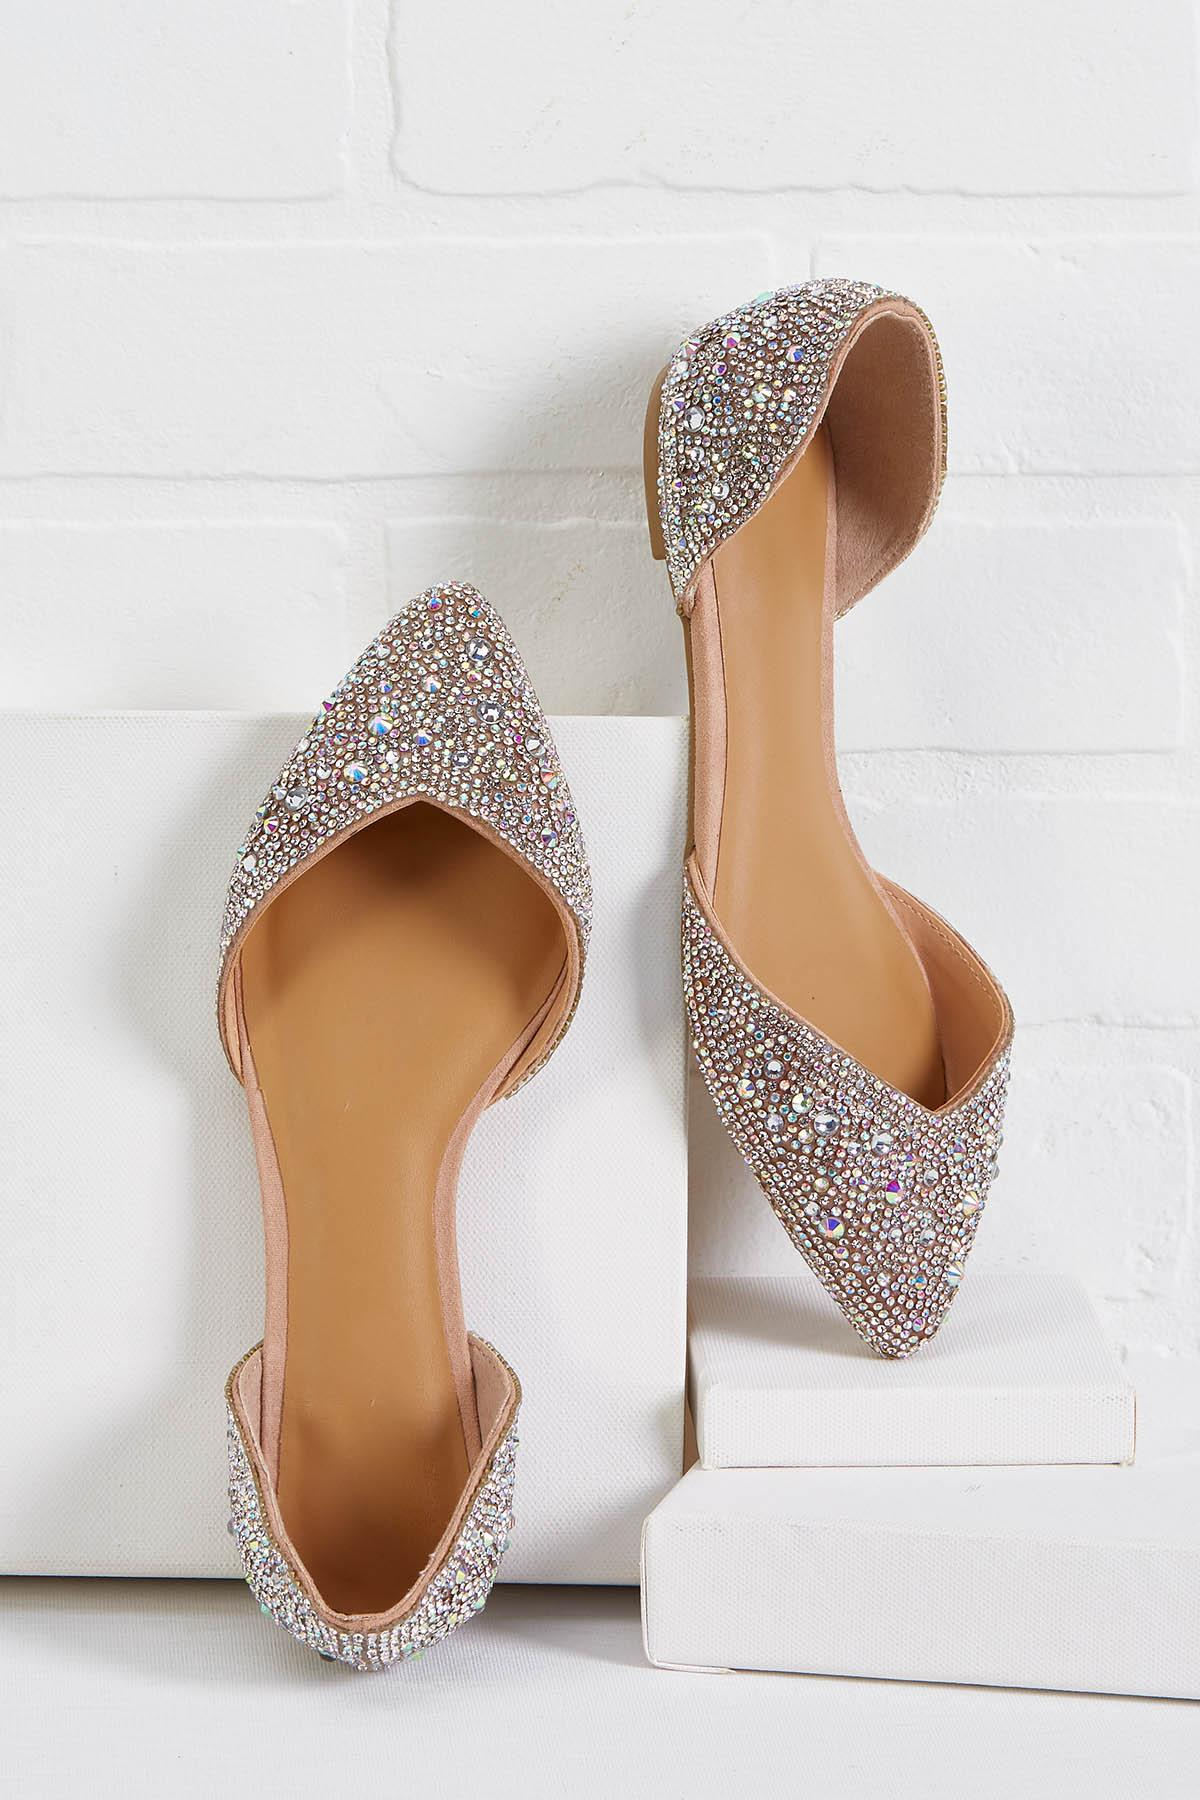 The Bling Is Flats